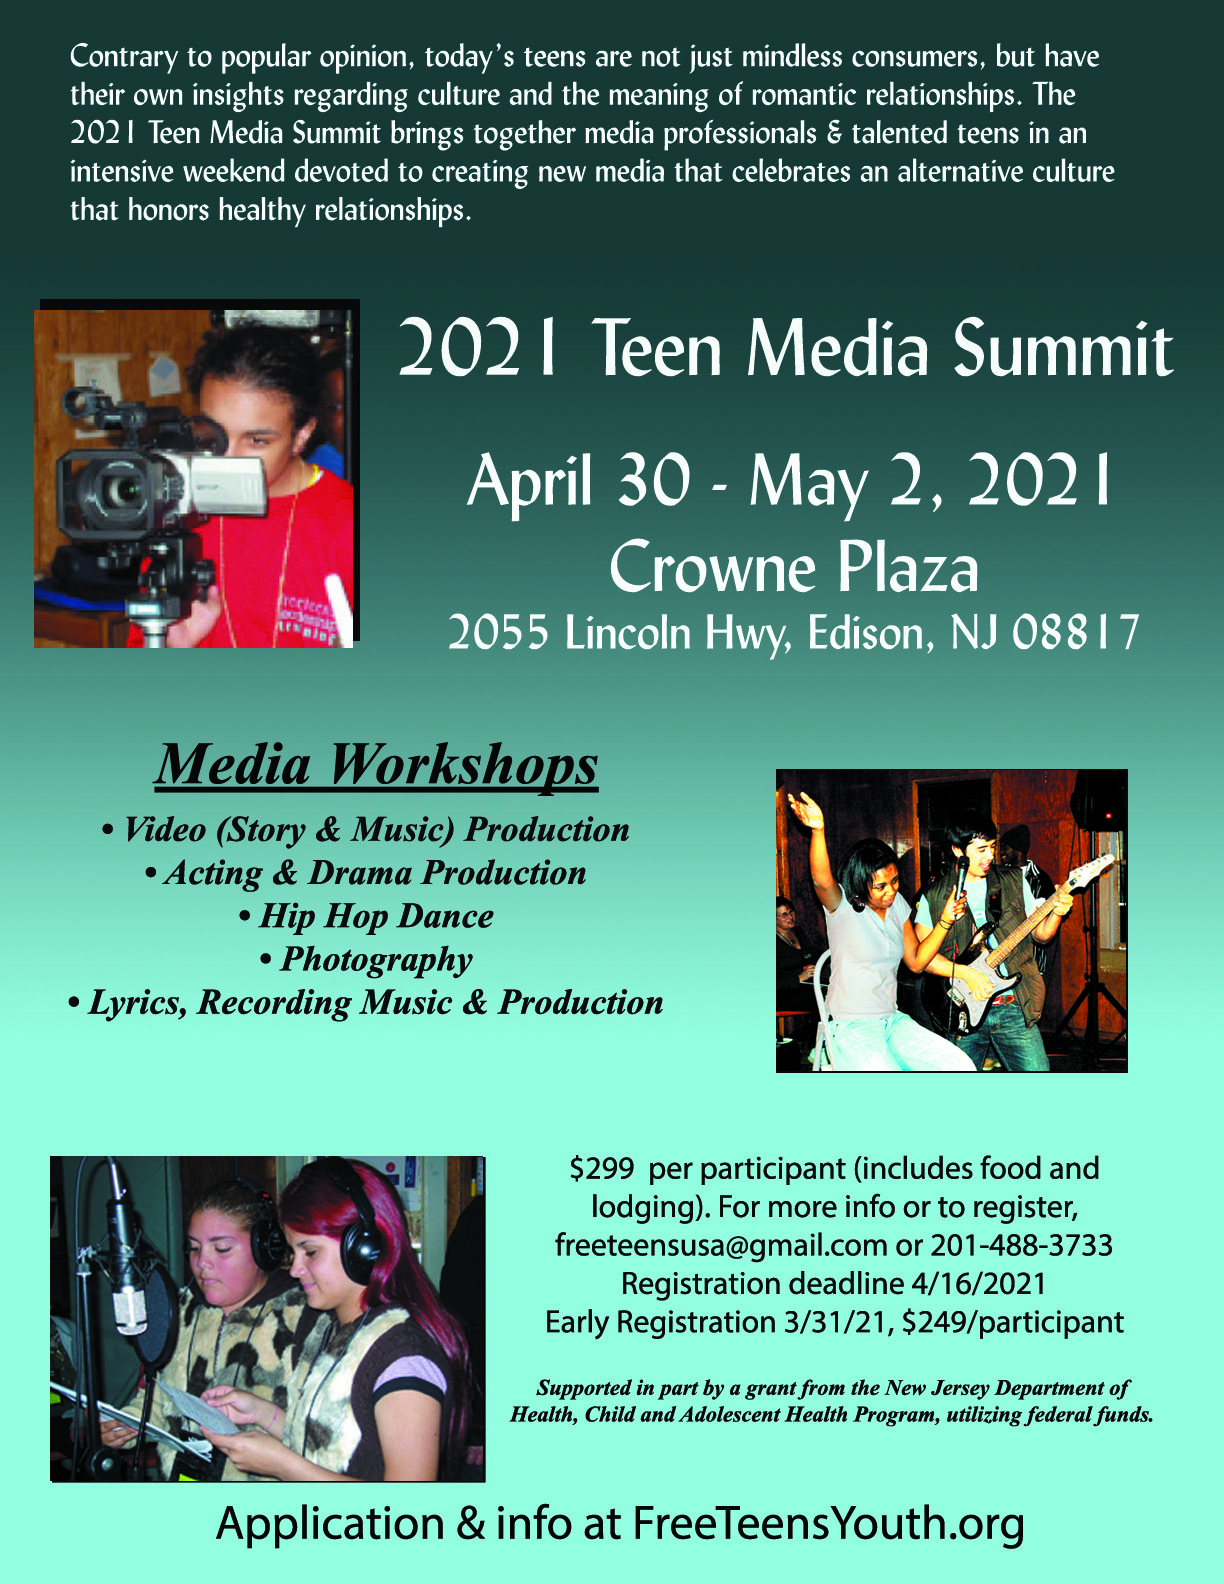 Teen Media Summit 2021 - Free Teens Youth - Changing Minds, Transforming Lives